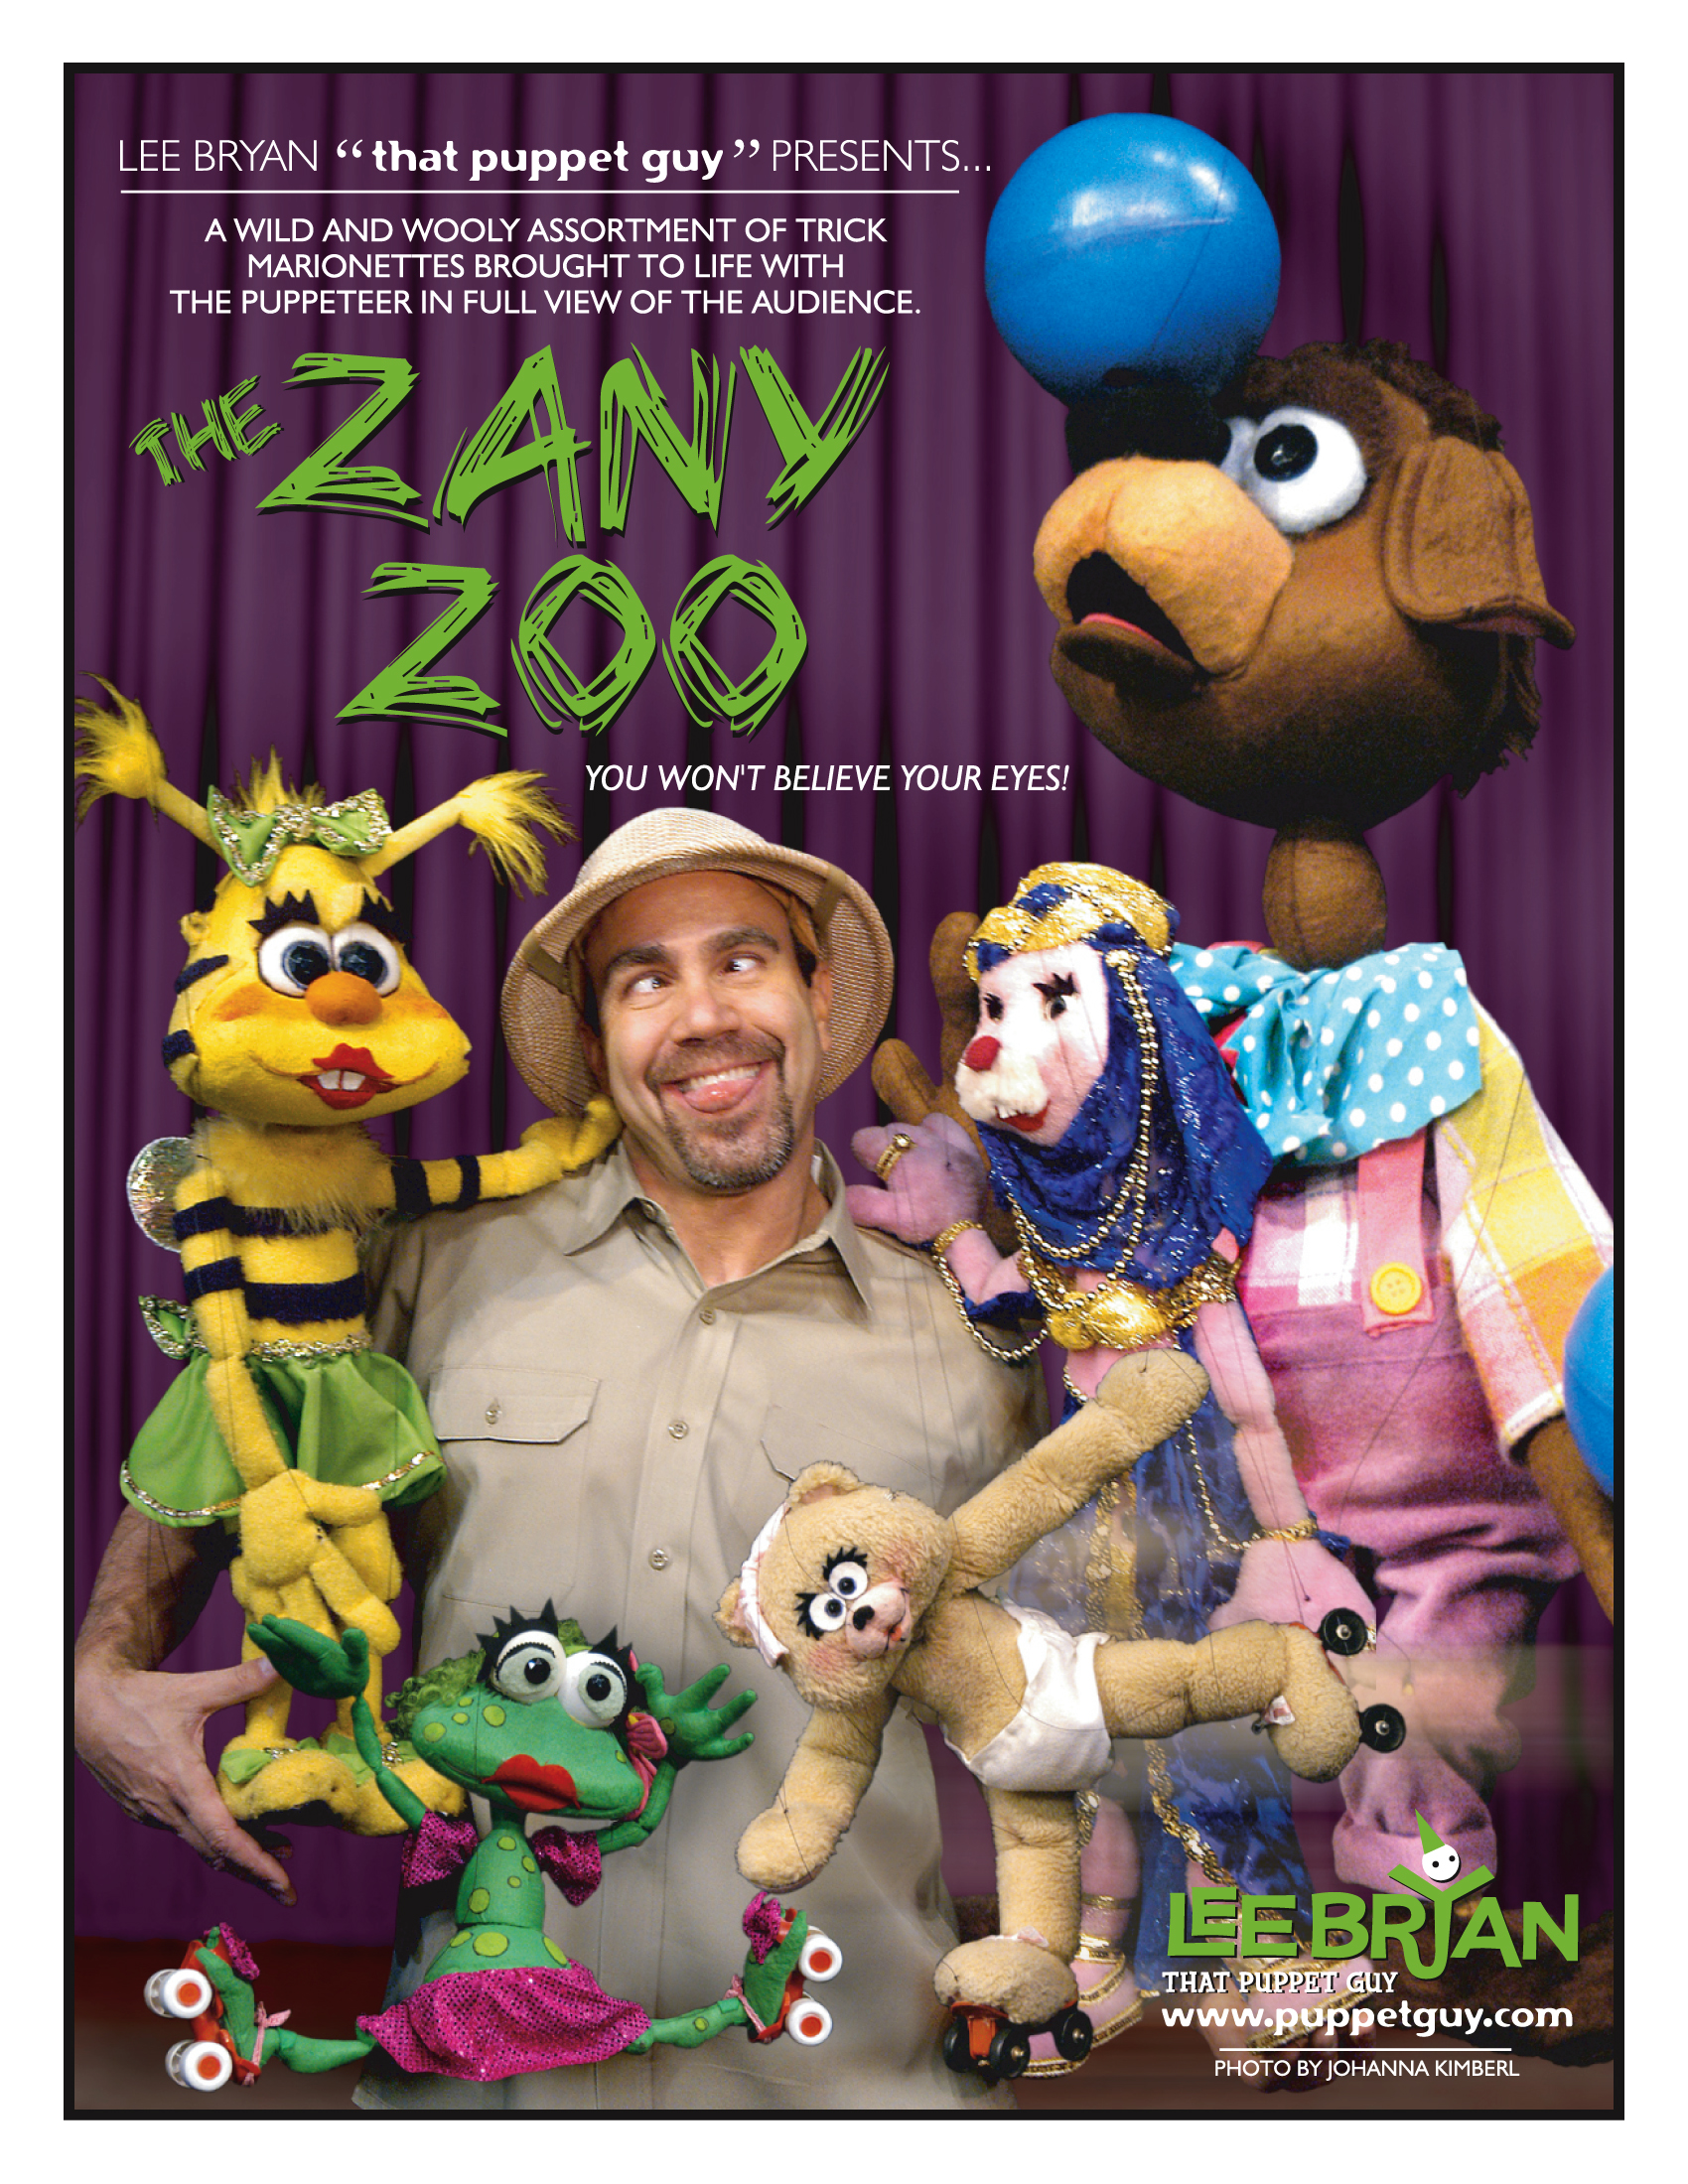 Publicity Slick The Zany Zoo